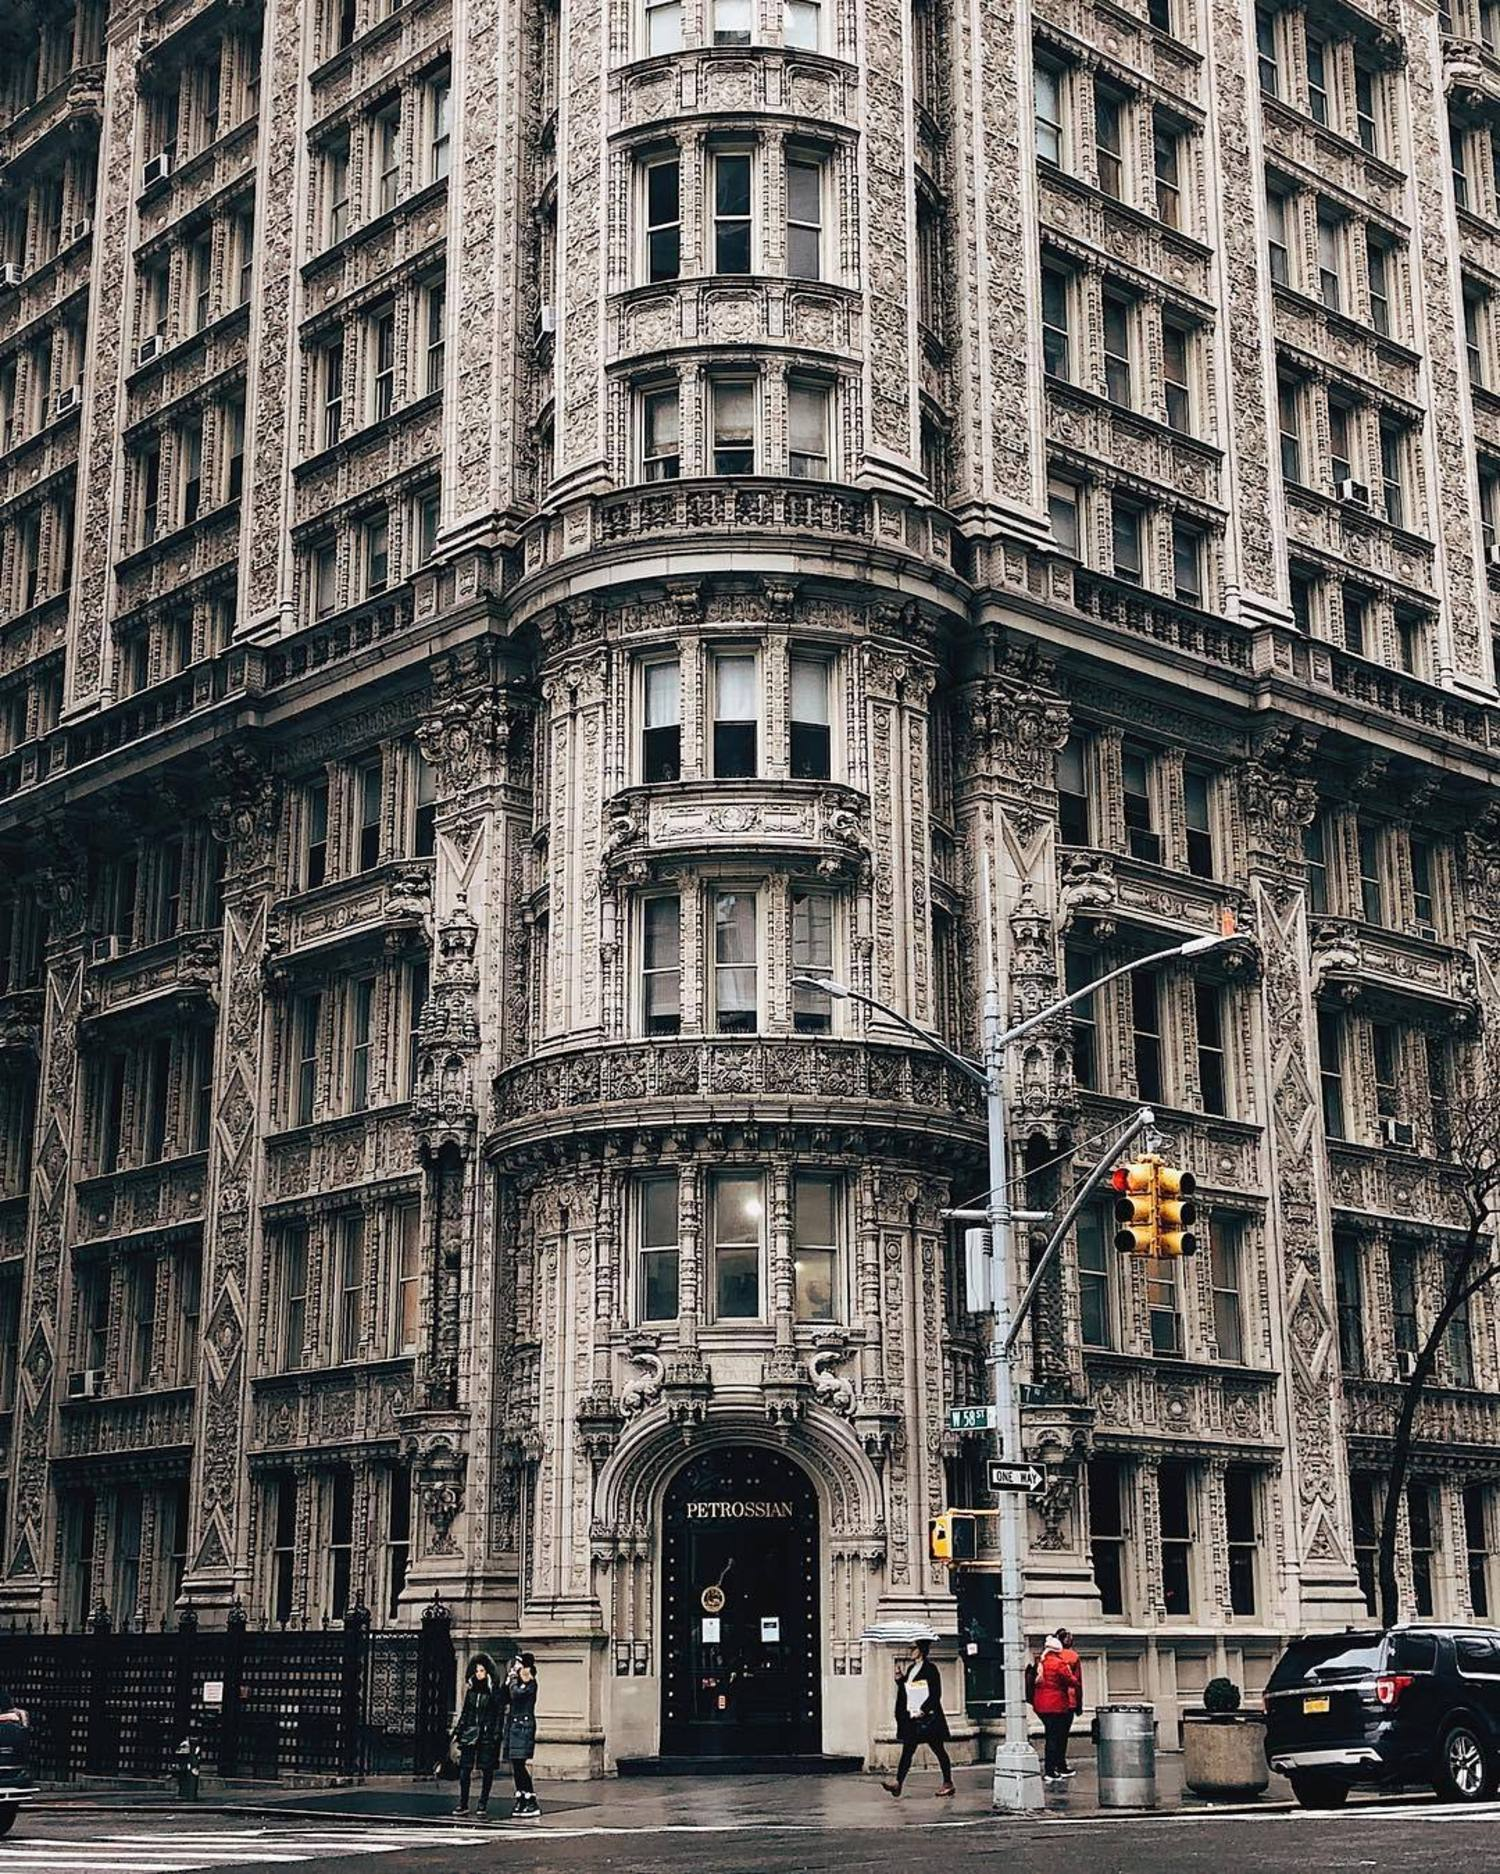 Courts Store New York: Tuesday, February 27th, 2018, Good Morning!